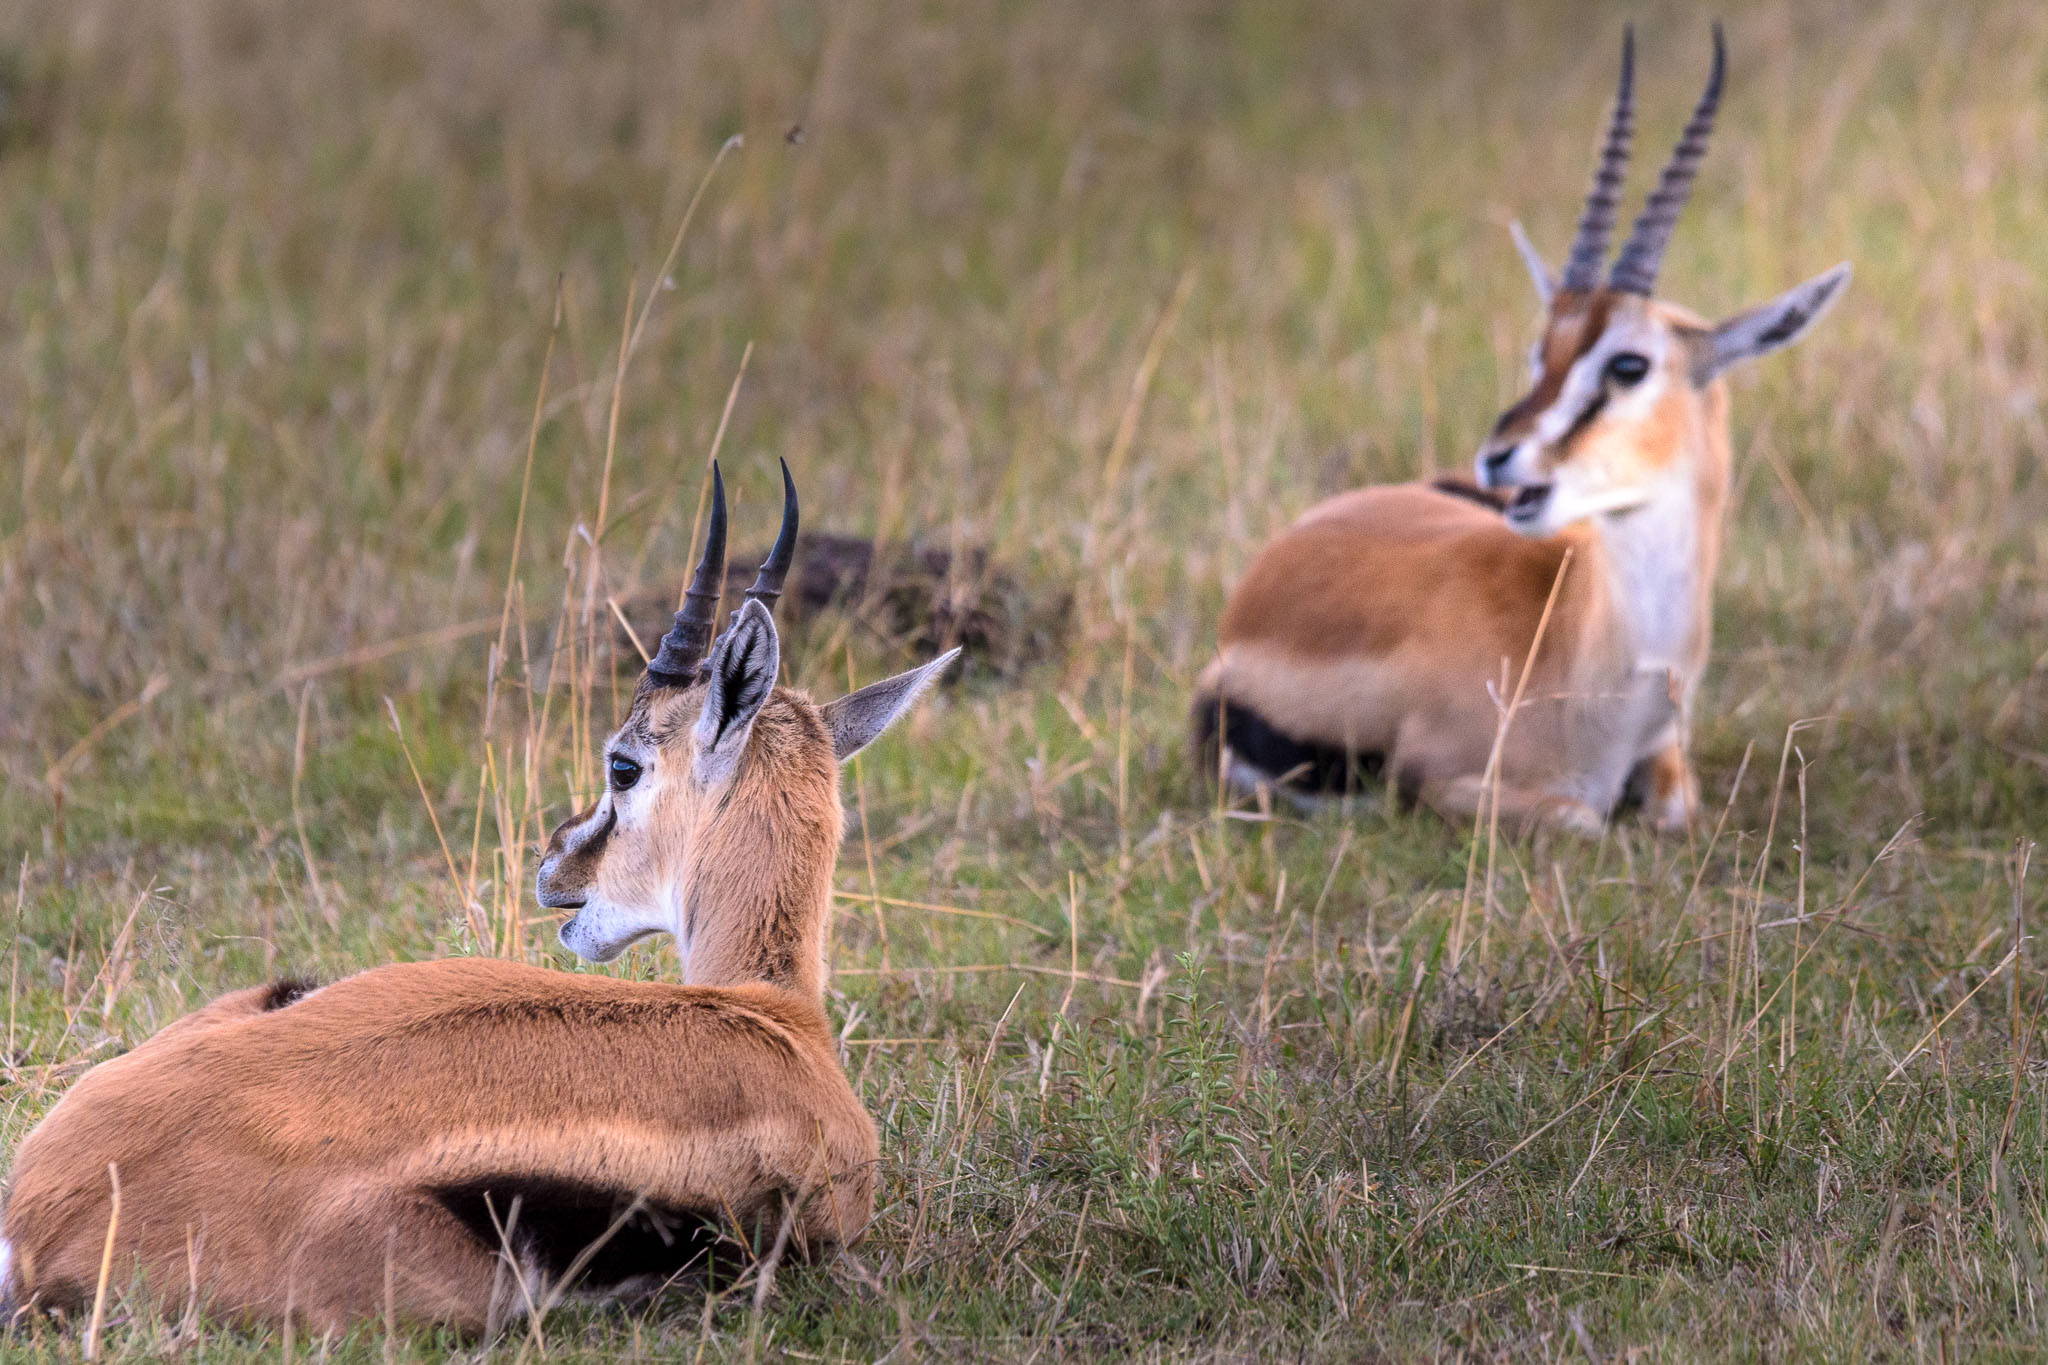 In the early afternoon the Gazelles tend to lie down and take a break. However one needs to always be aware as predators are always on the prowl, though less are around during the heat of the day.